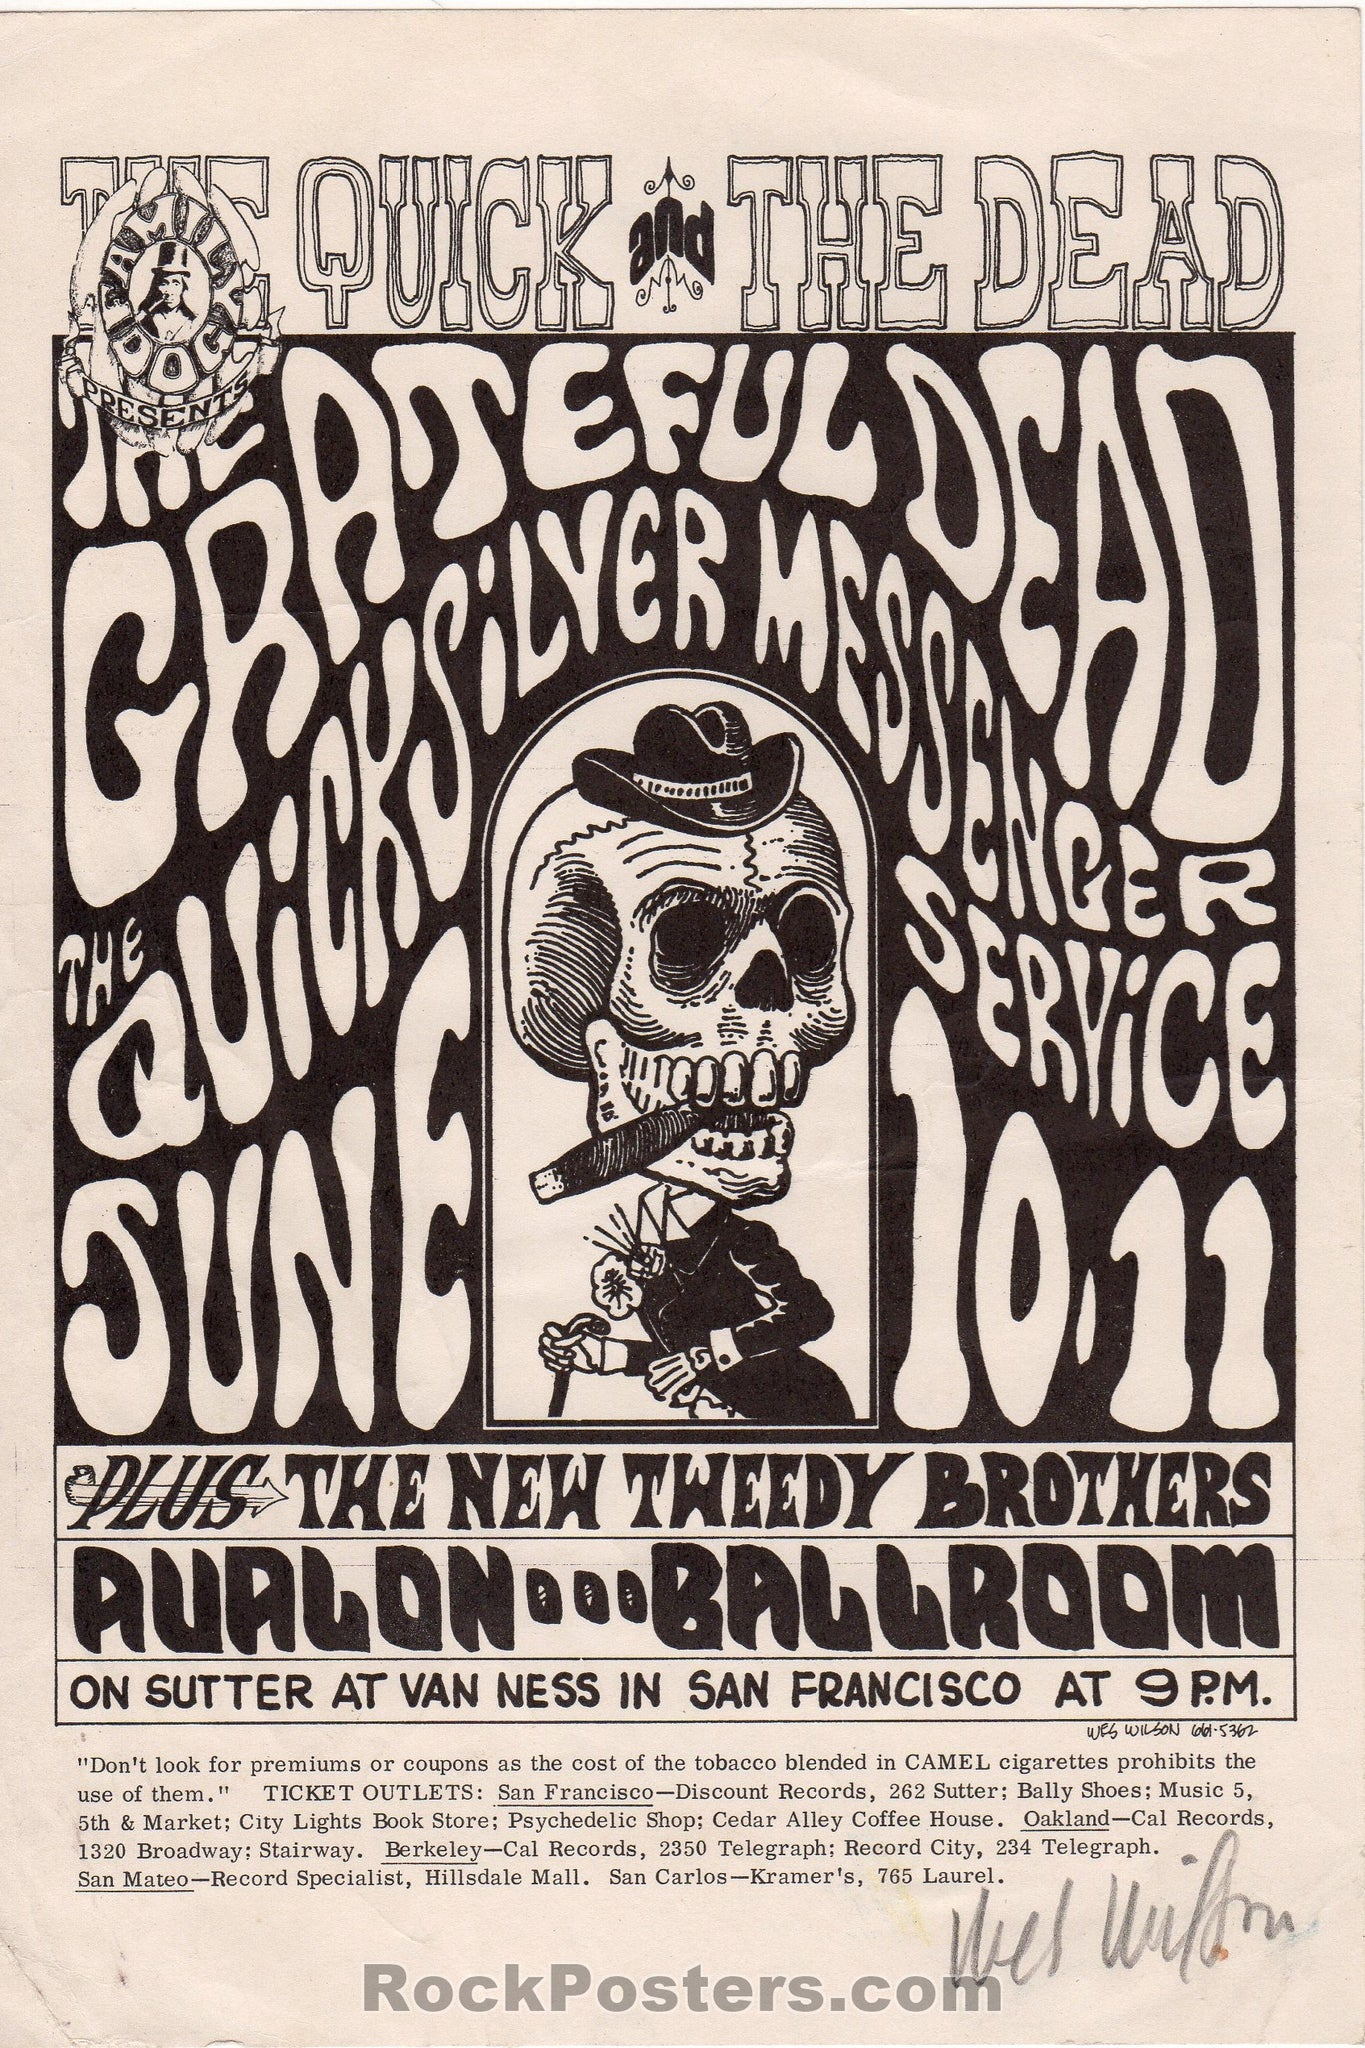 AUCTION - FD 12  - Grateful Dead 1966  Wes Wilson SIGNED Original Handbill   - Avalon Ballroom  - Condition - Excellent